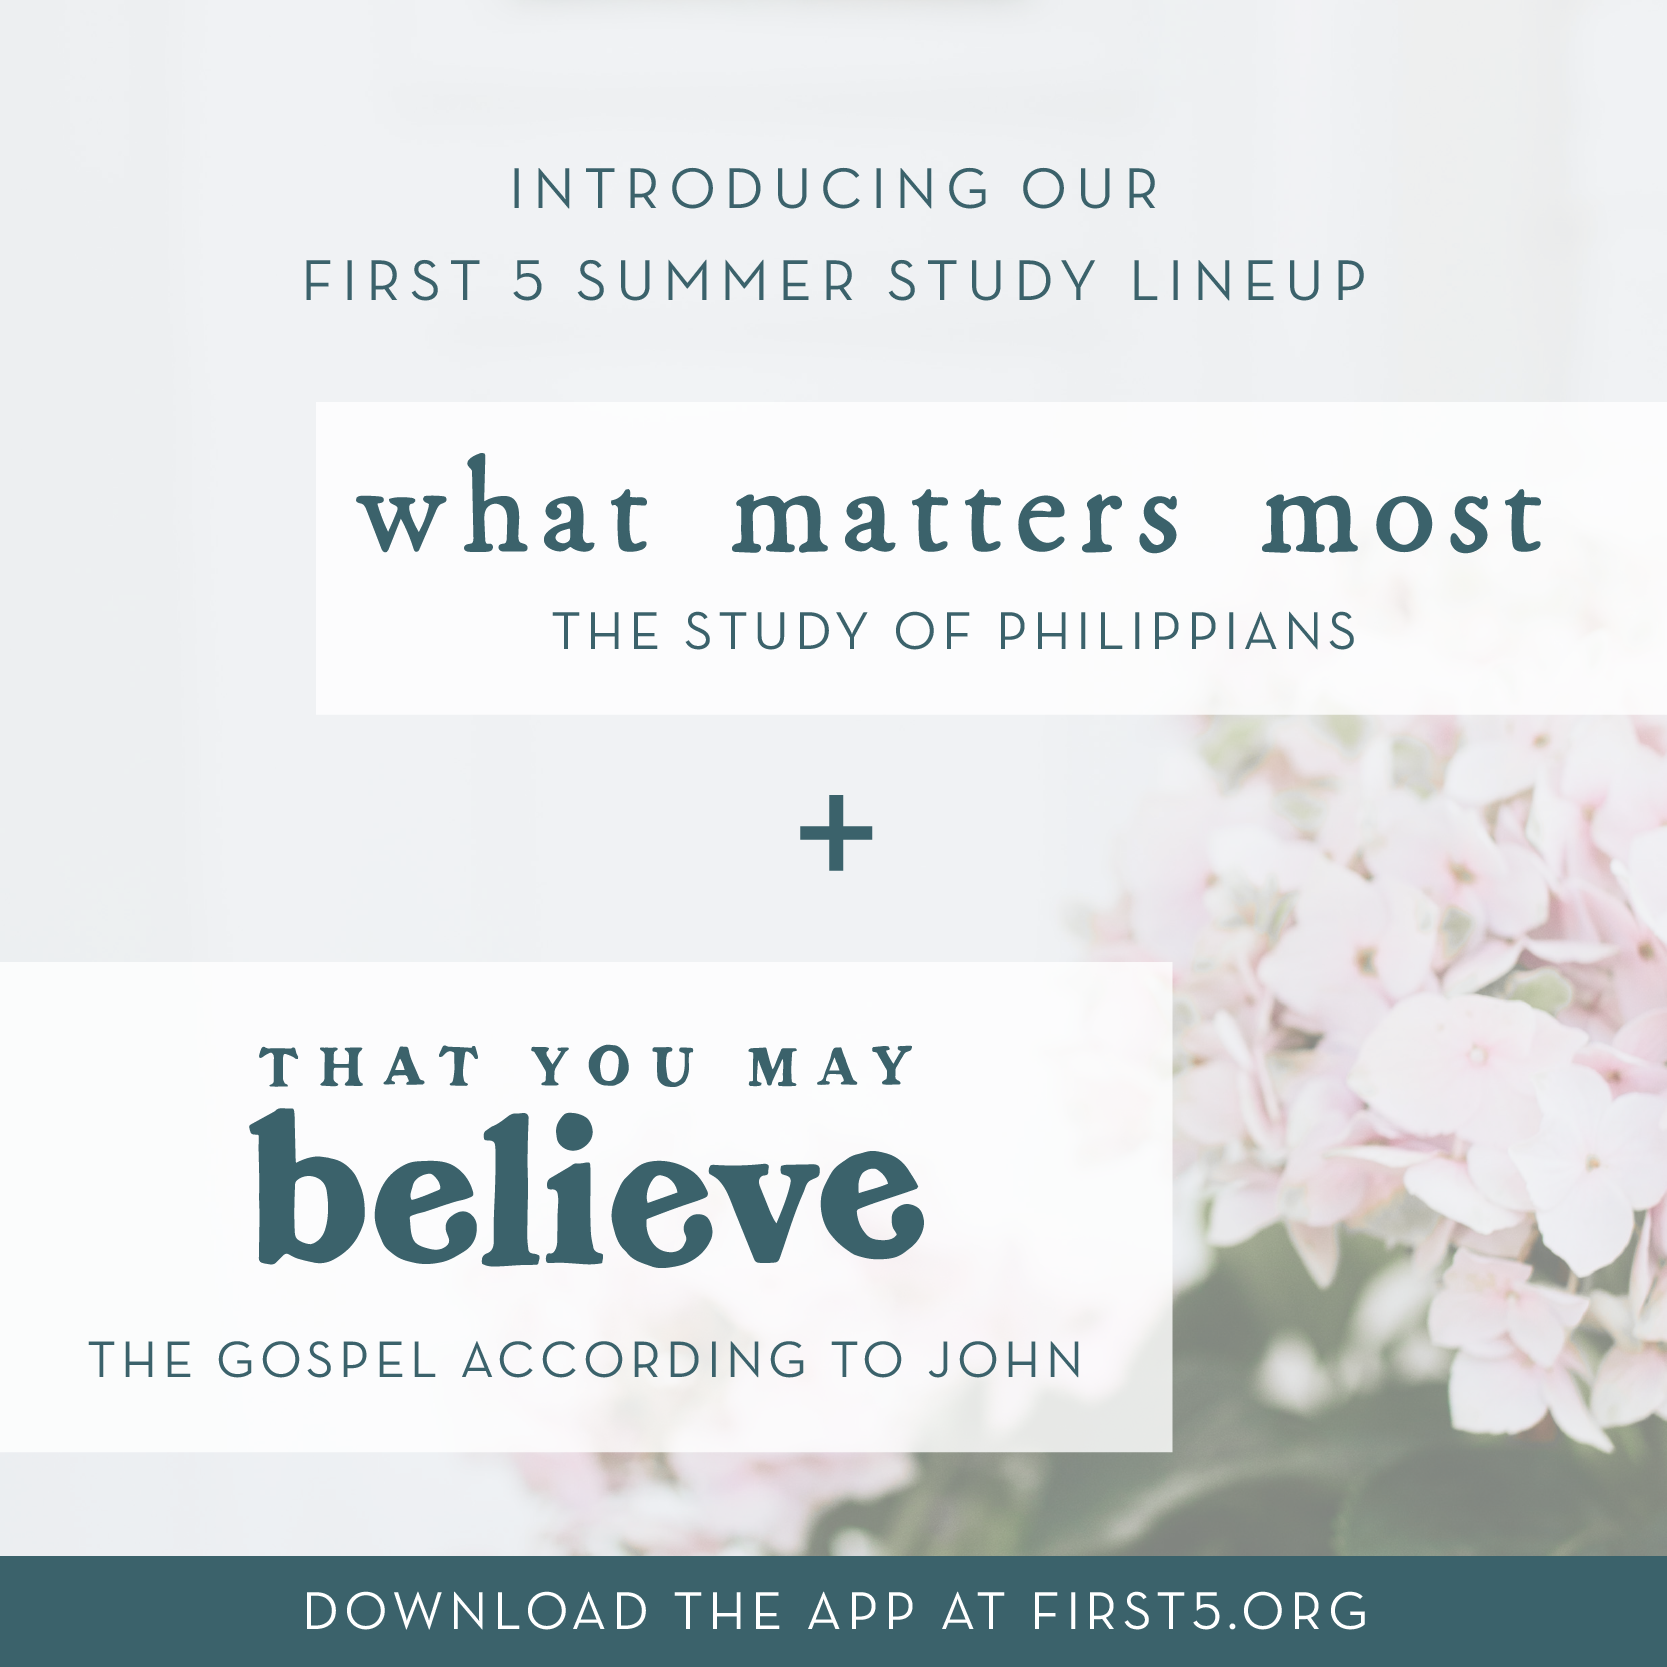 Download the First 5 app for FREE today at